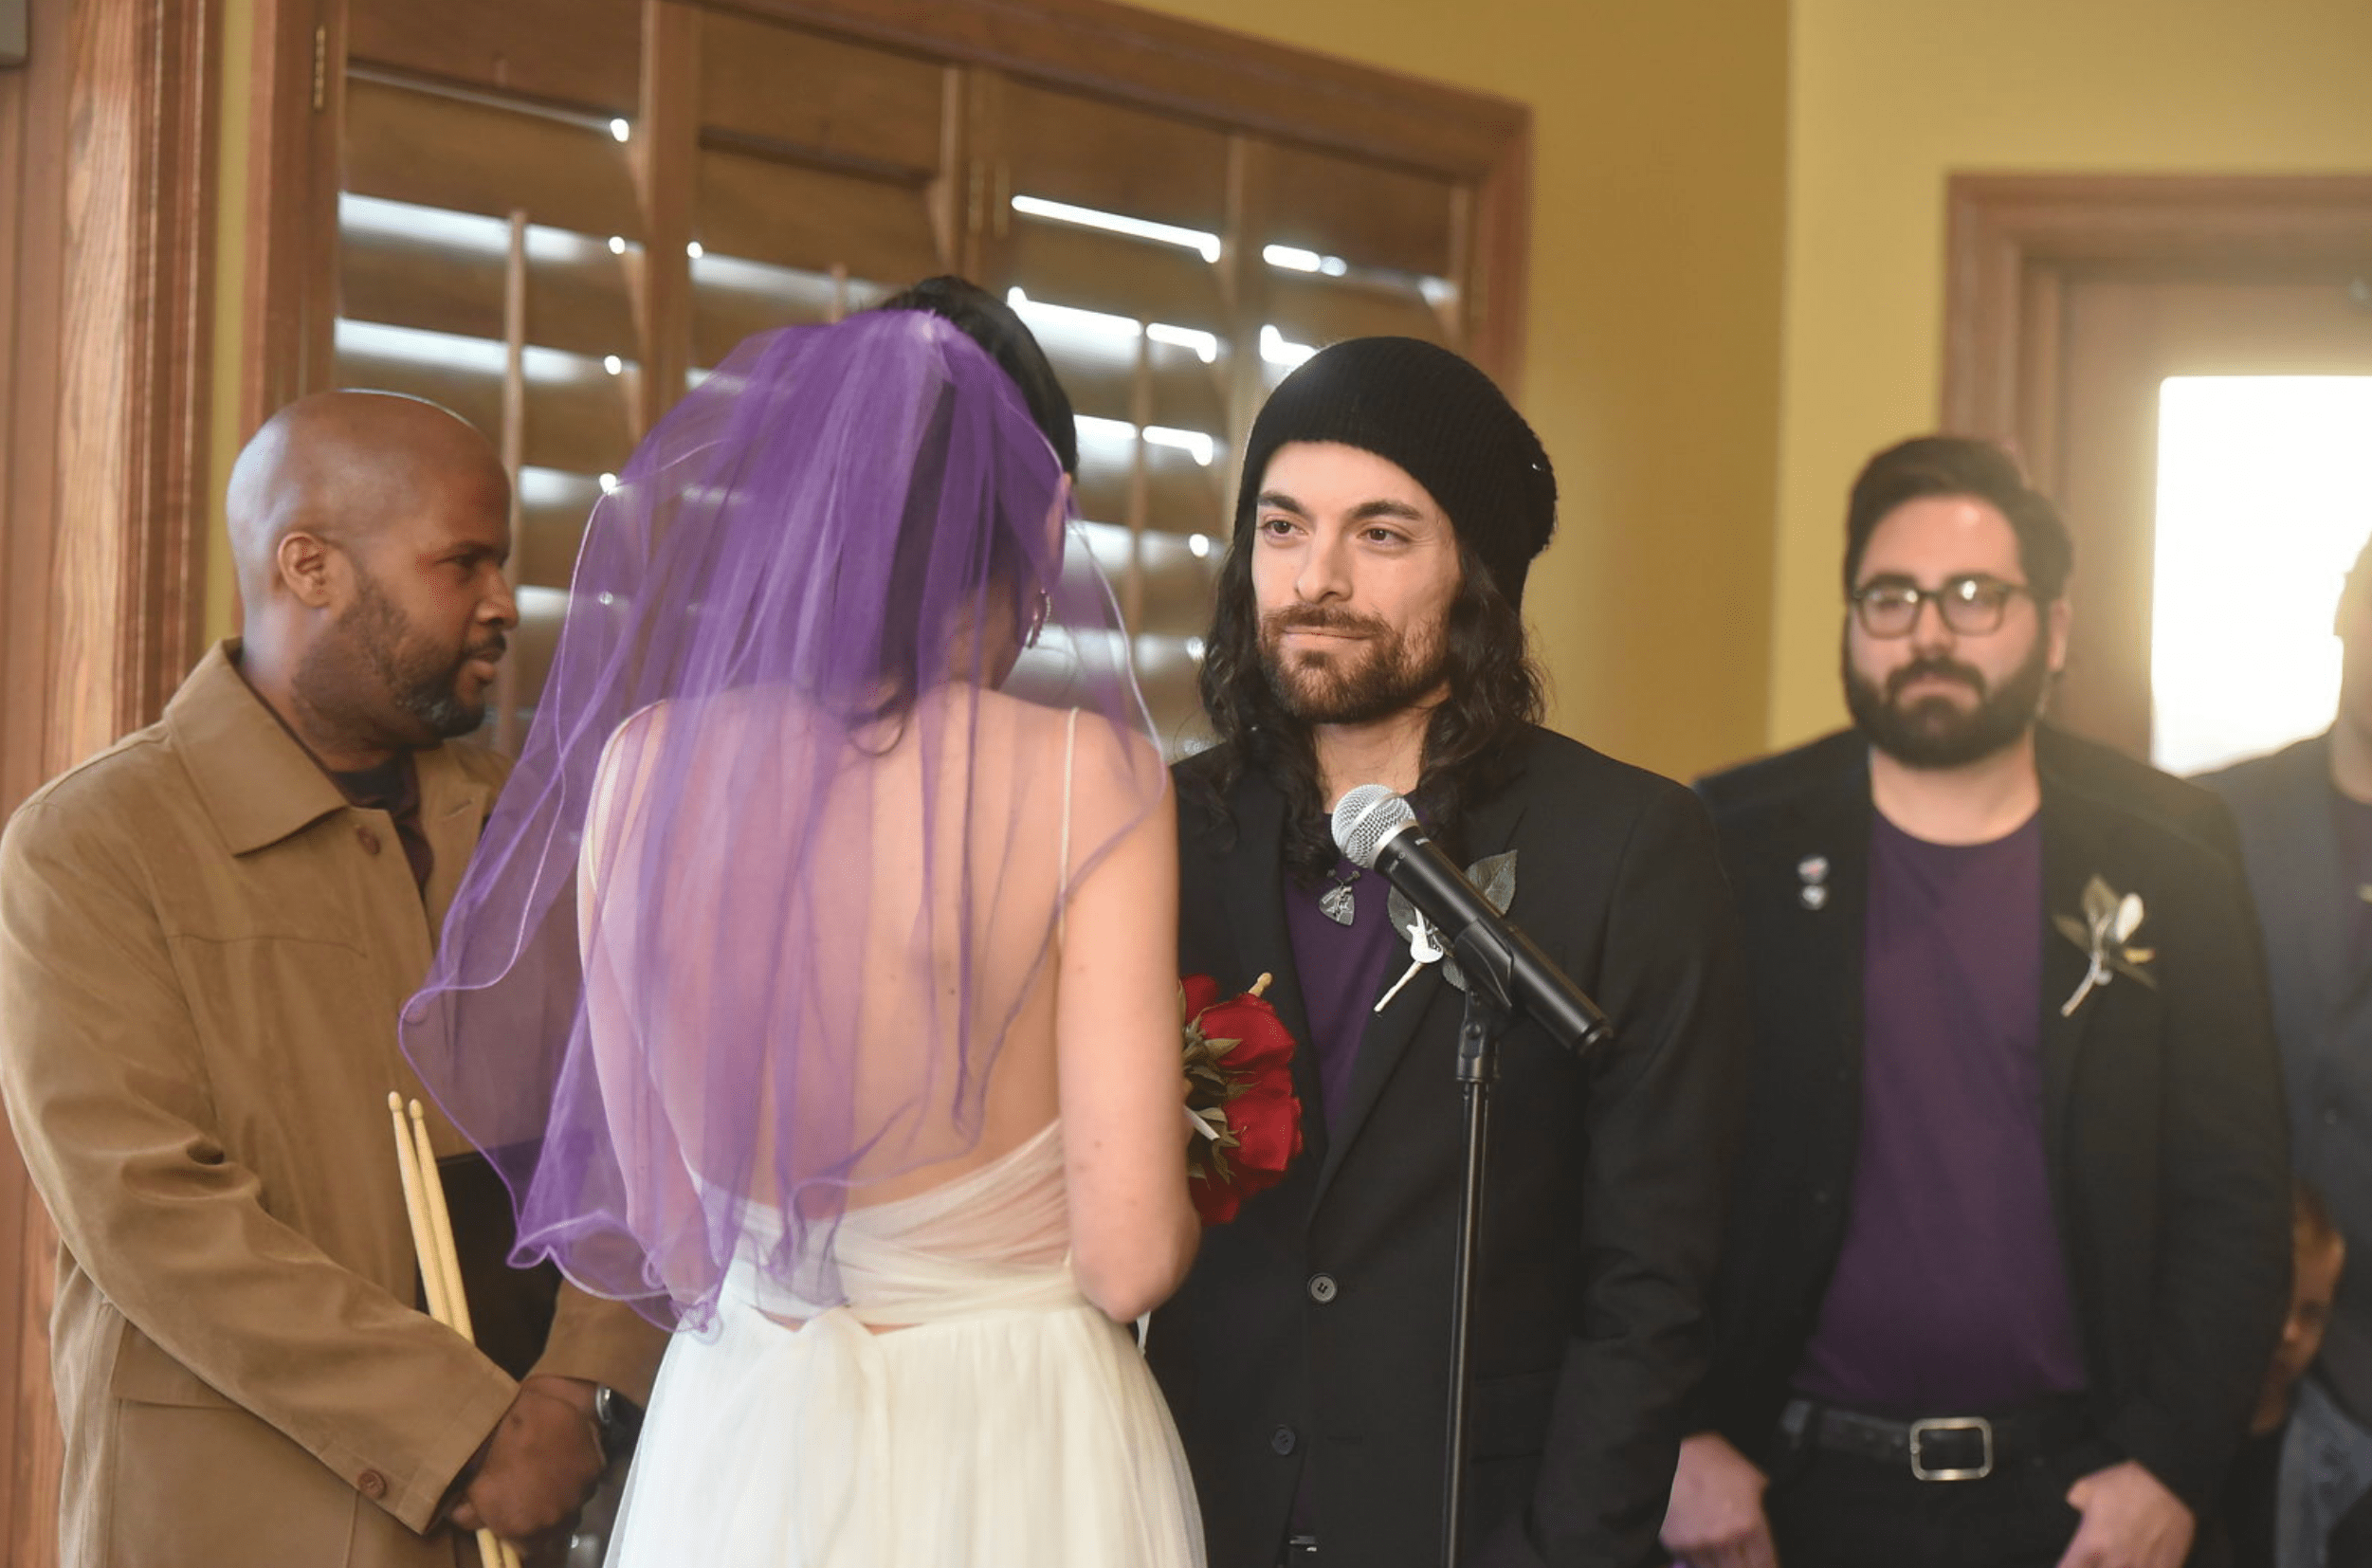 rock and roll wedding theme